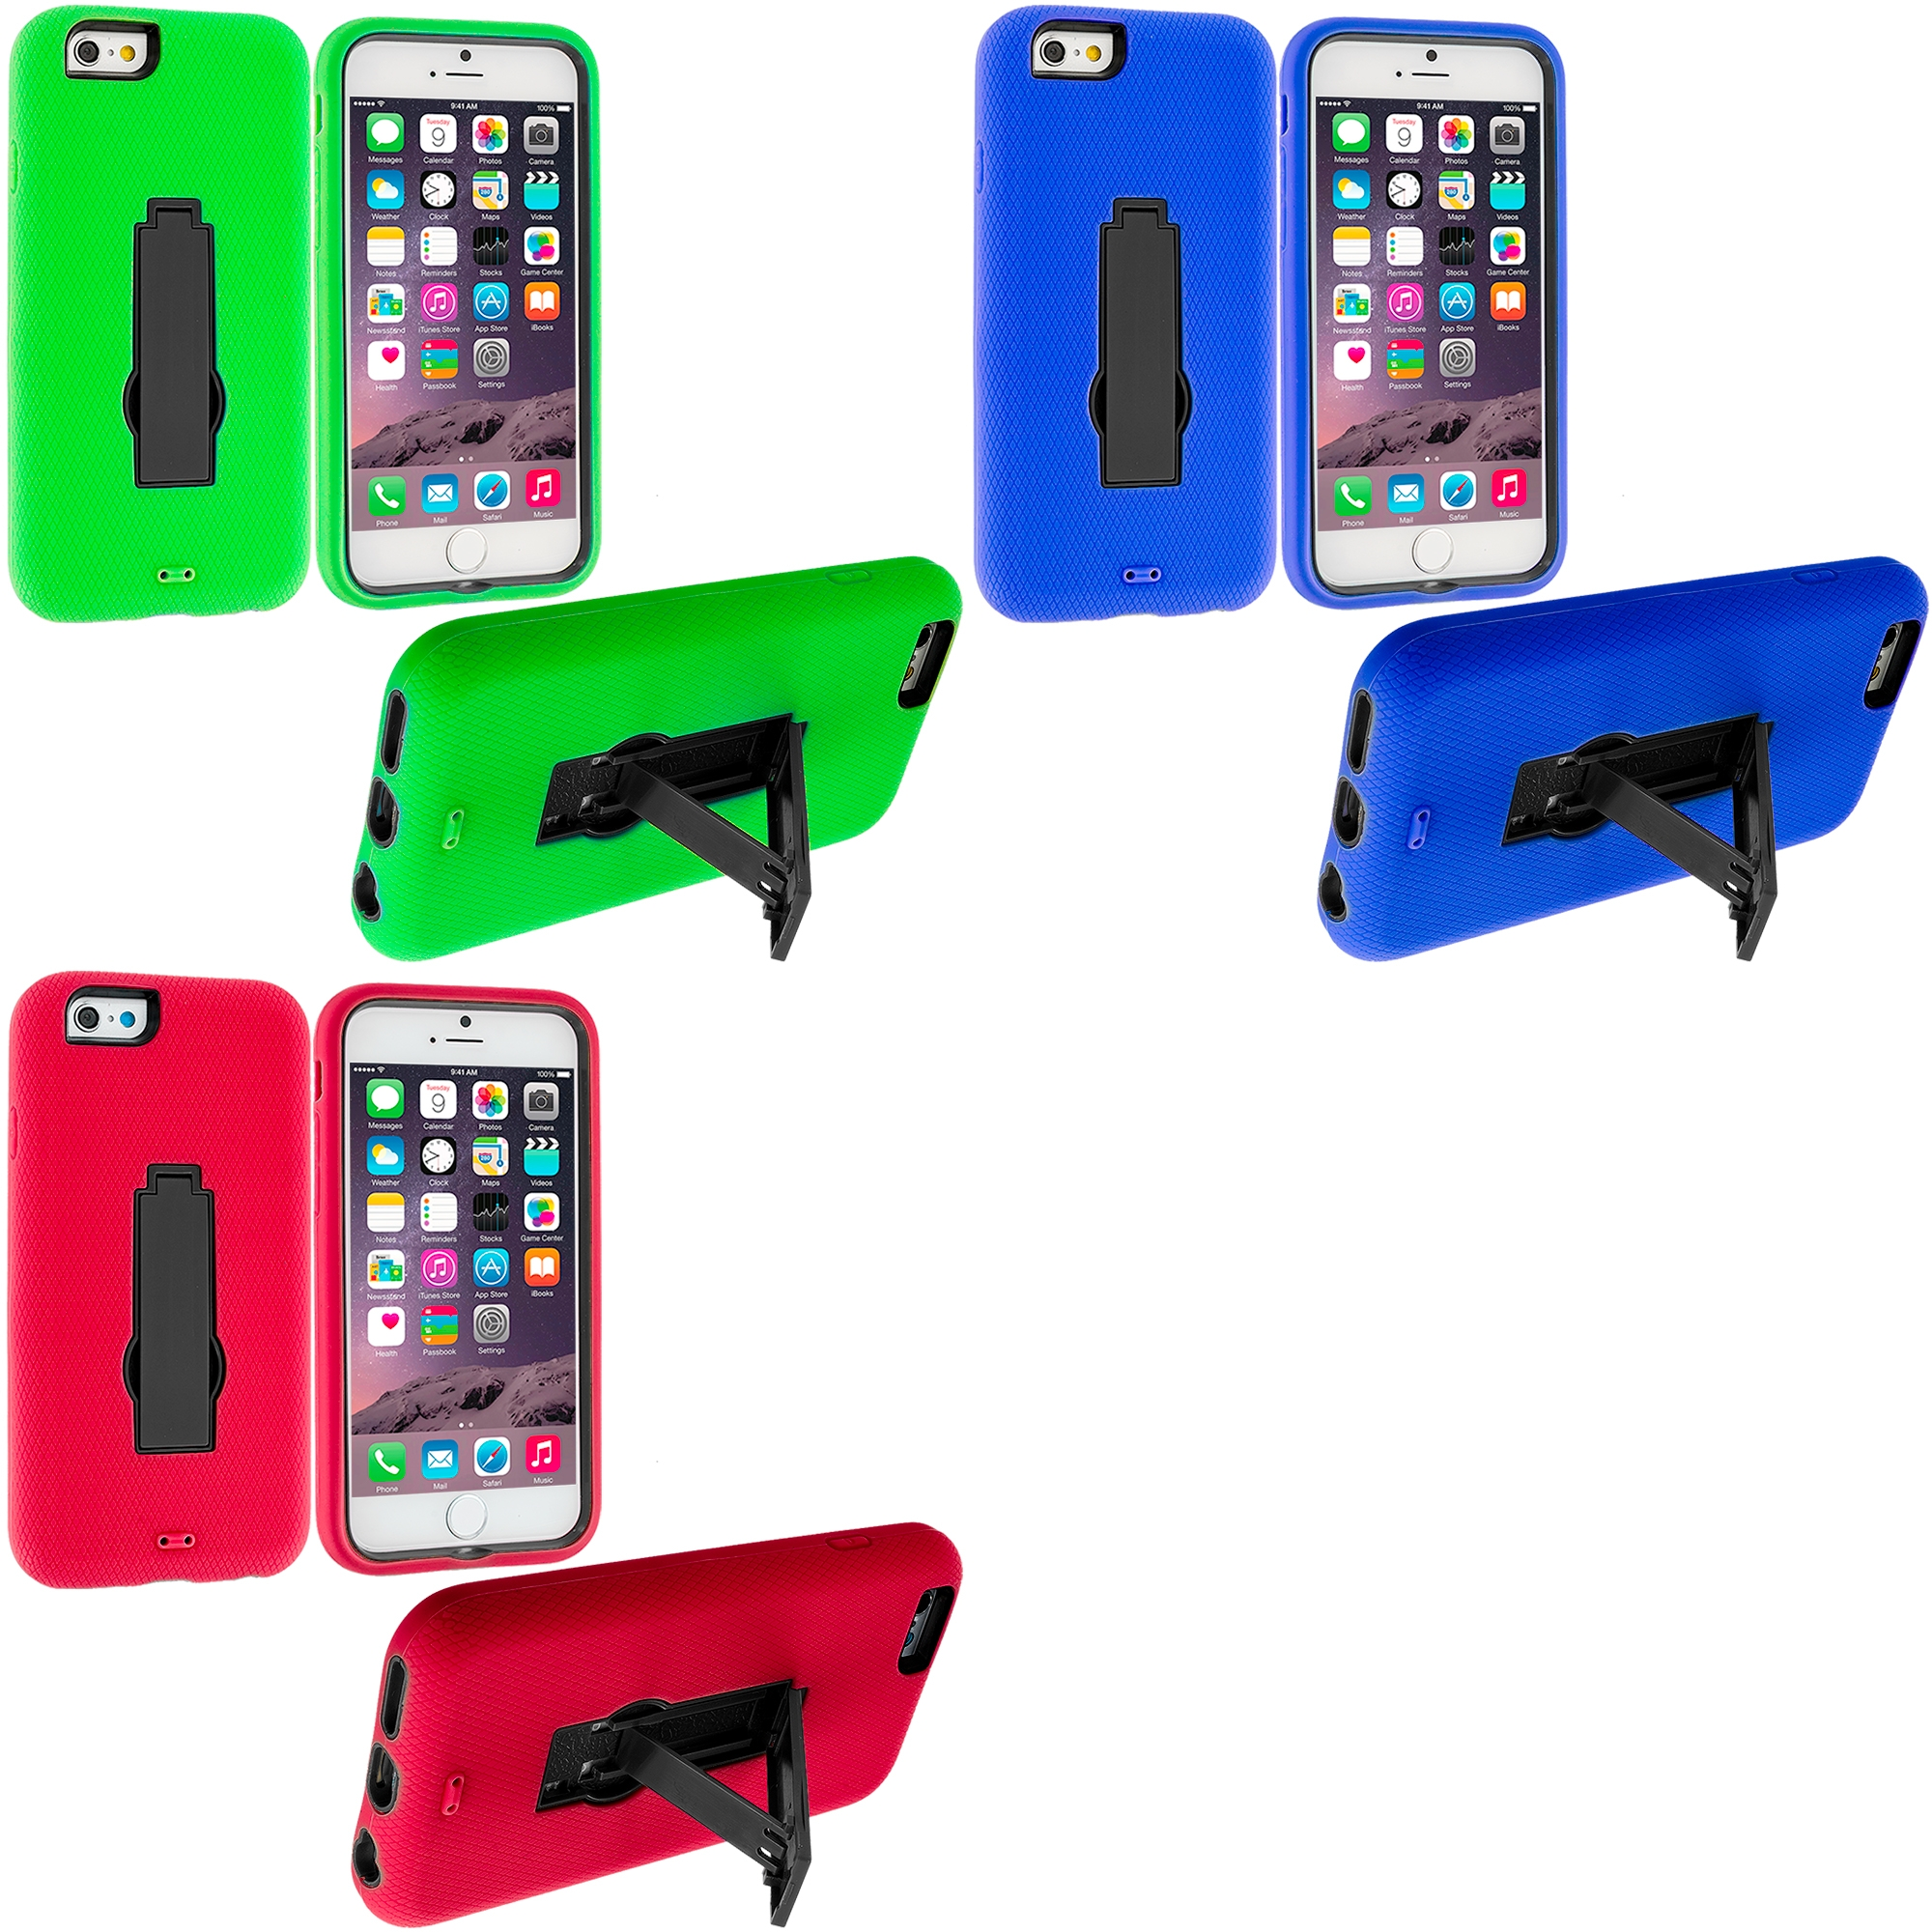 Apple iPhone 6 6S (4.7) 3 in 1 Combo Bundle Pack - Hybrid Heavy Duty Hard/Soft Case Cover with Stand